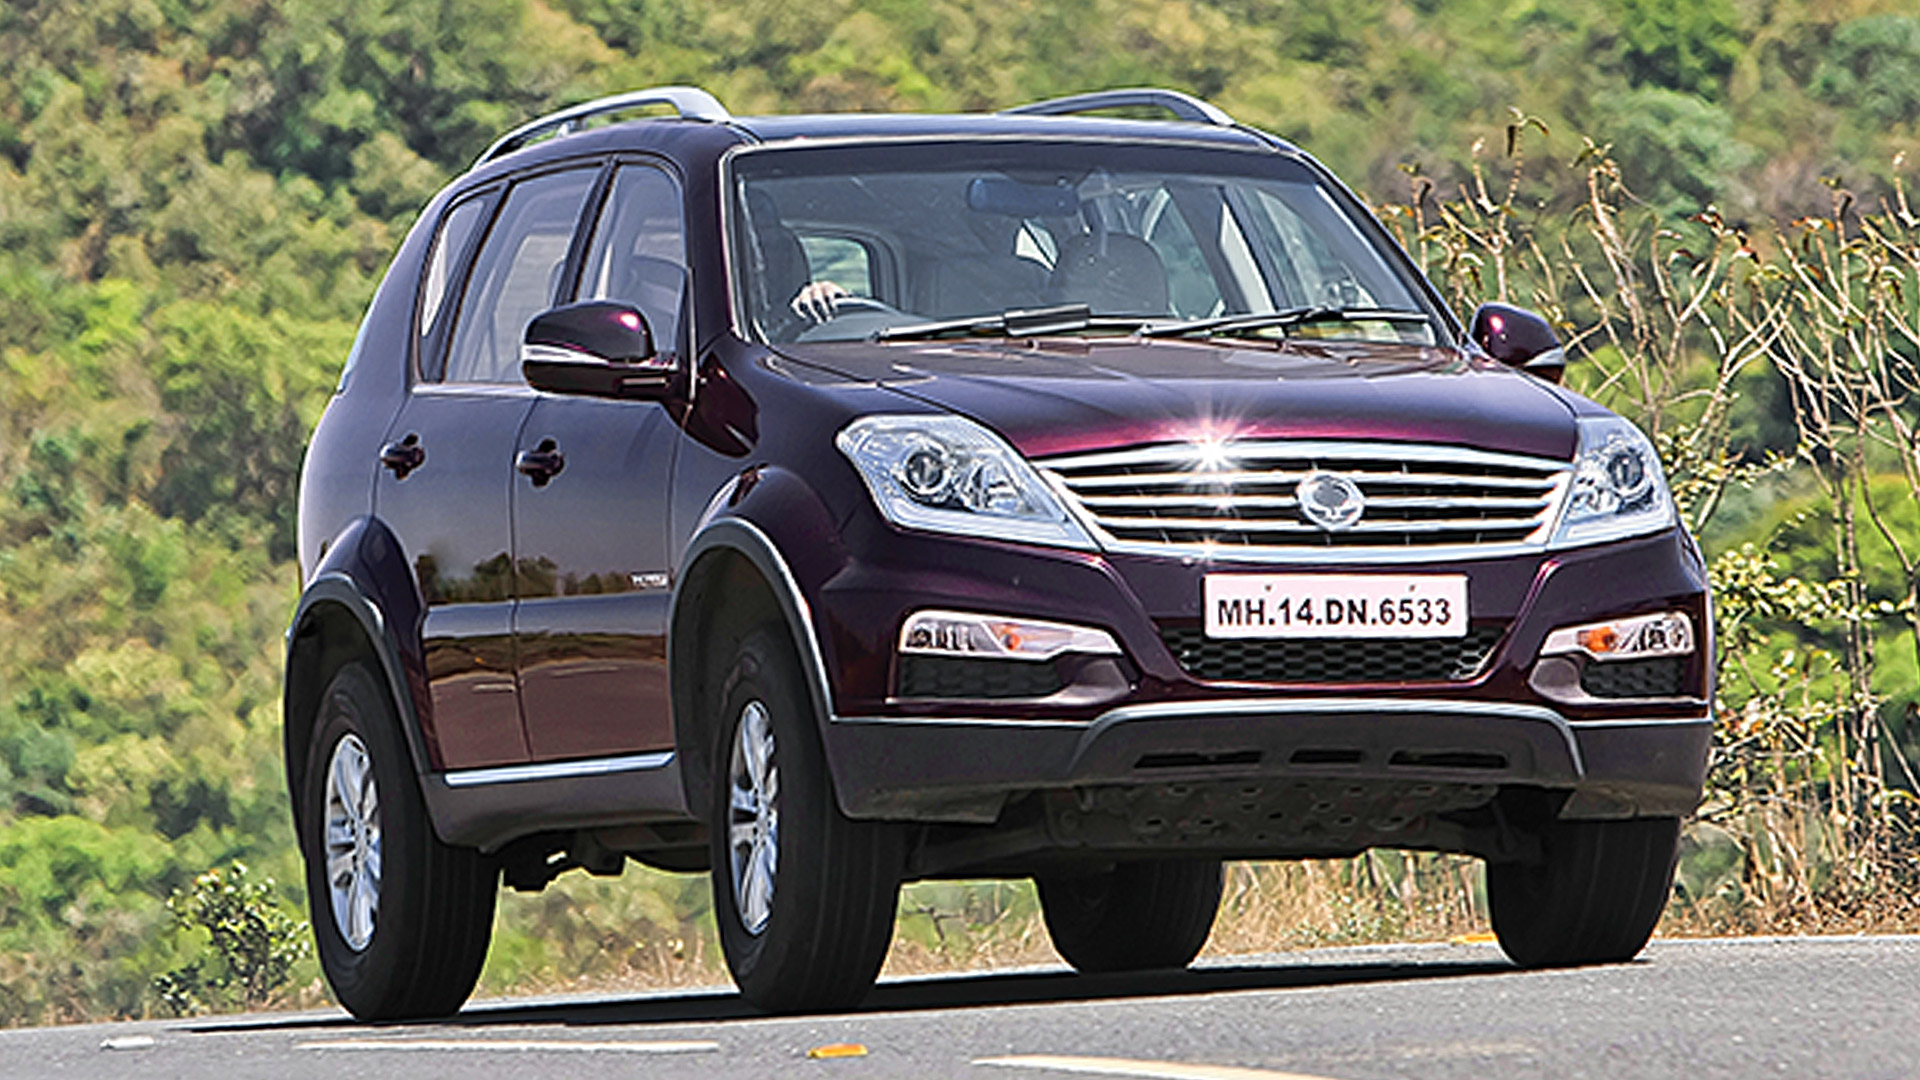 Ssangyong rexton 2014 RX5 Compare